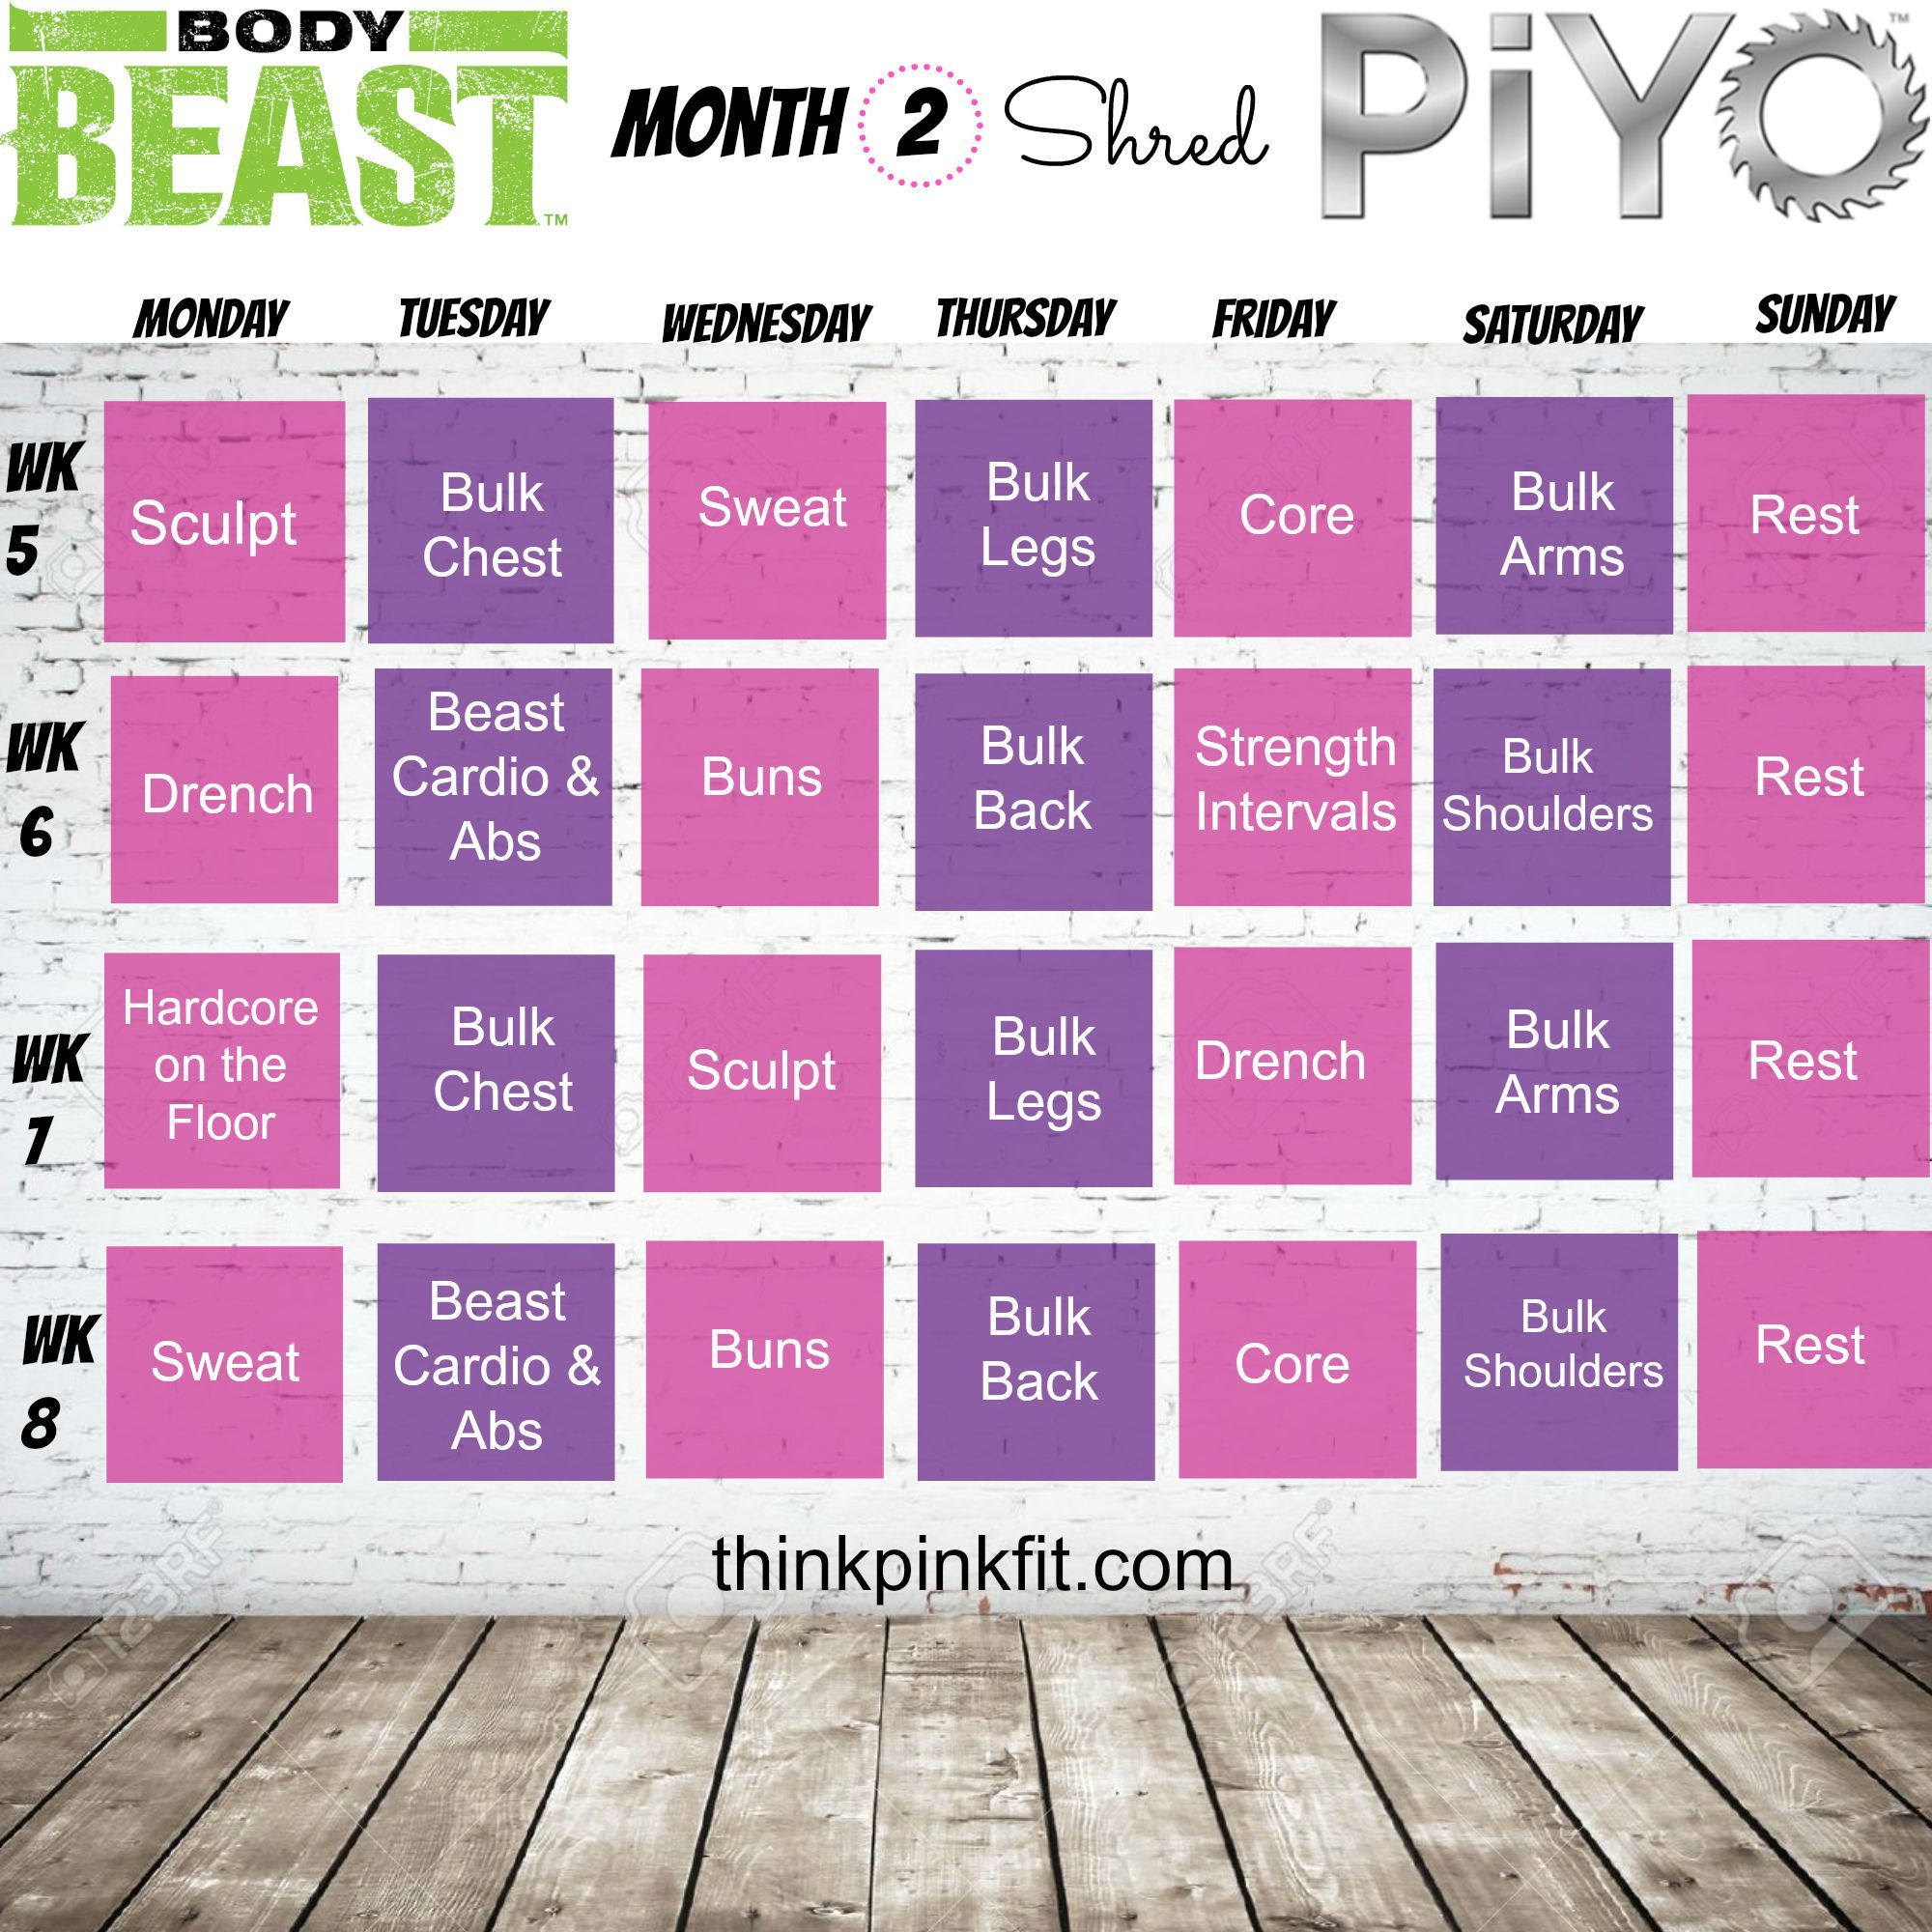 Body Beast Amp Piyo Hybrid Schedule For Strength And